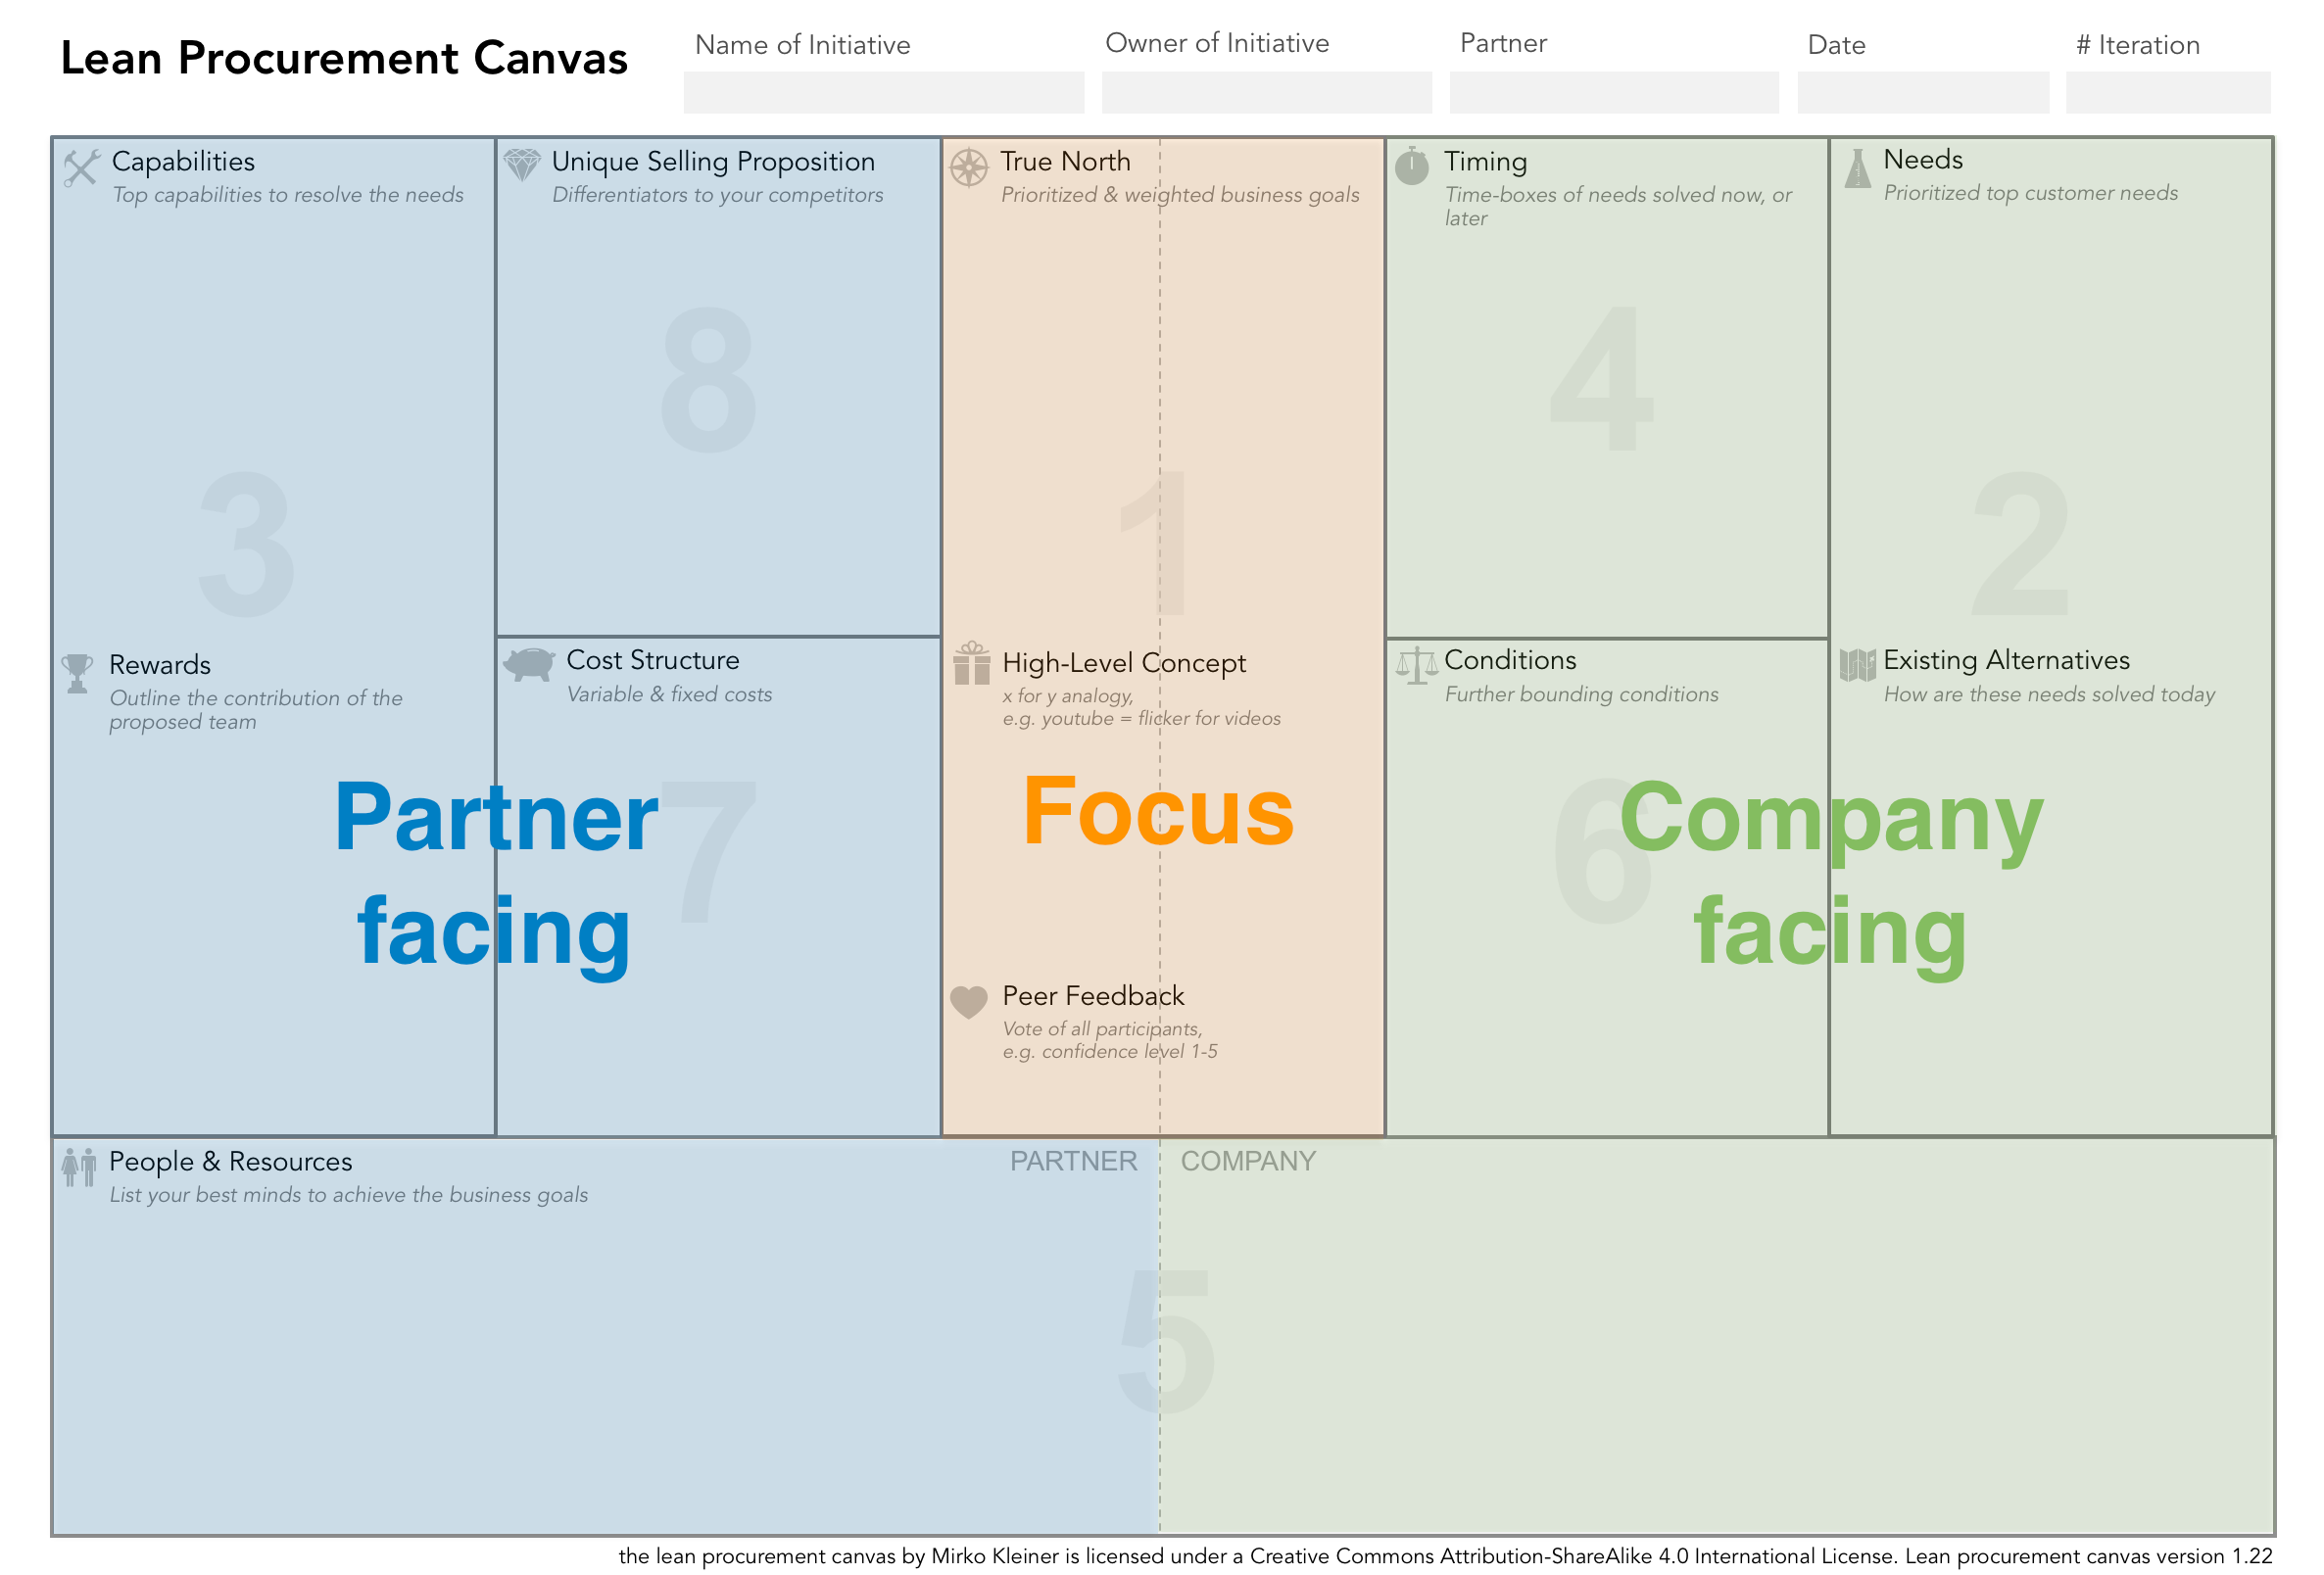 lean-procurement-canvas-v1.22.png